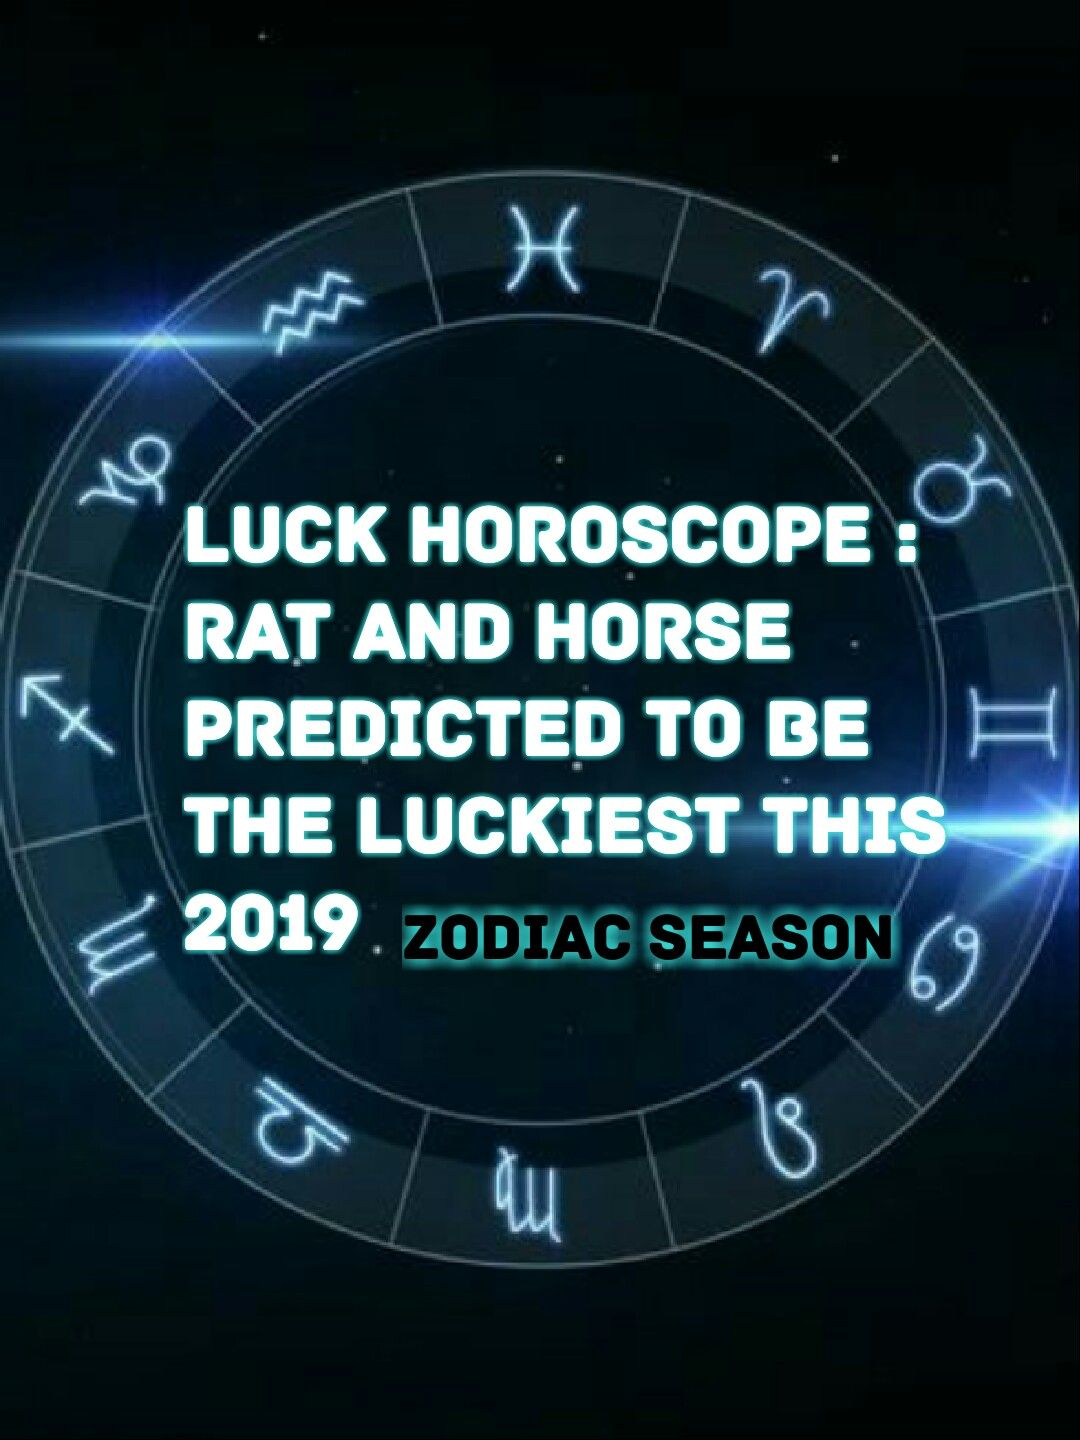 Luck Horoscope : Rat and Horse predicted to be the luckiest this